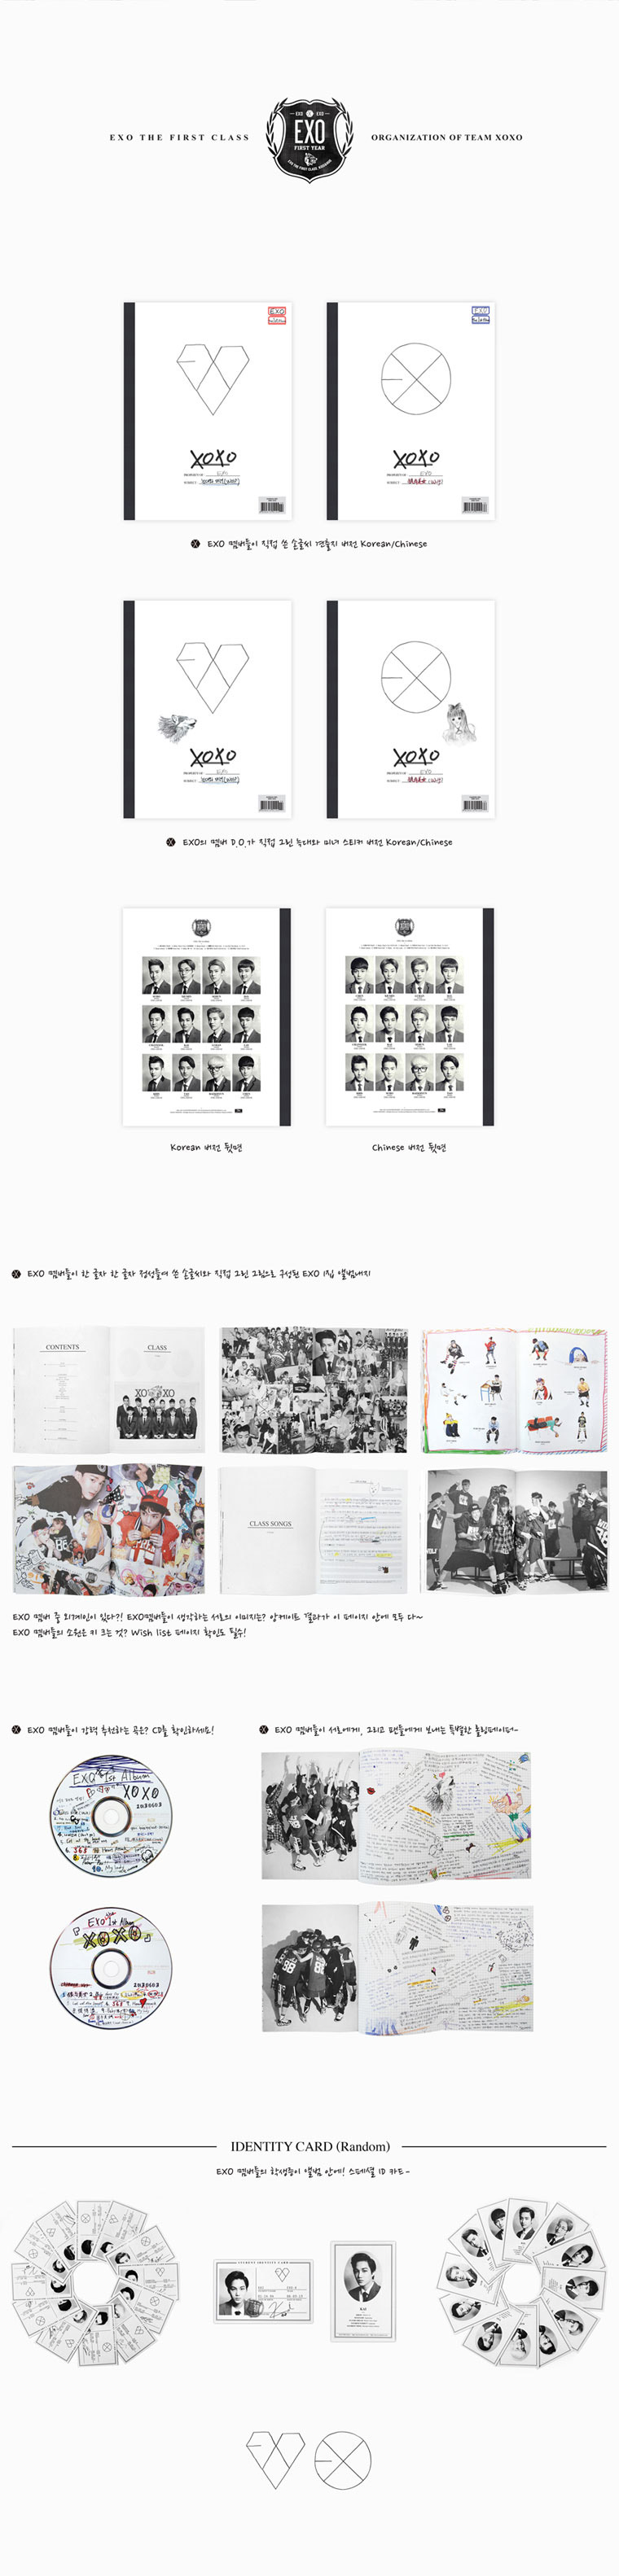 [ K-POP ] [Limited Quantity]EXO - Vol.1 (XOXO) (Hug Ver.)